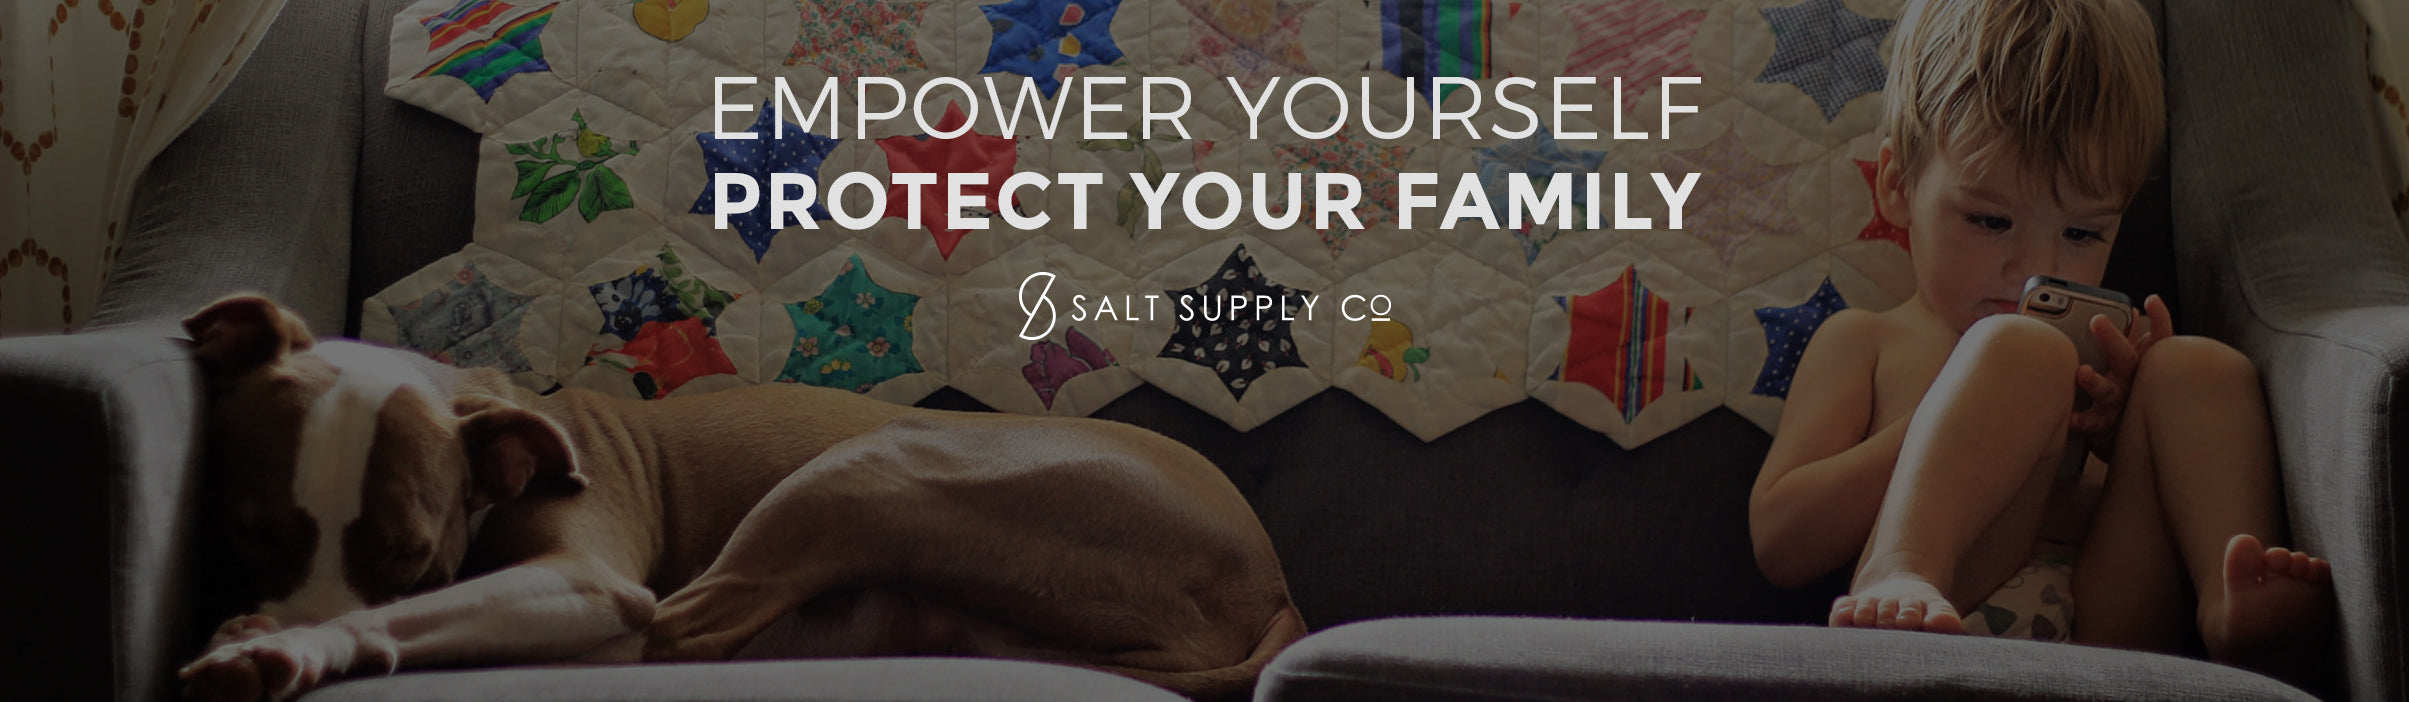 Empower Yourself. Protect Your Family.